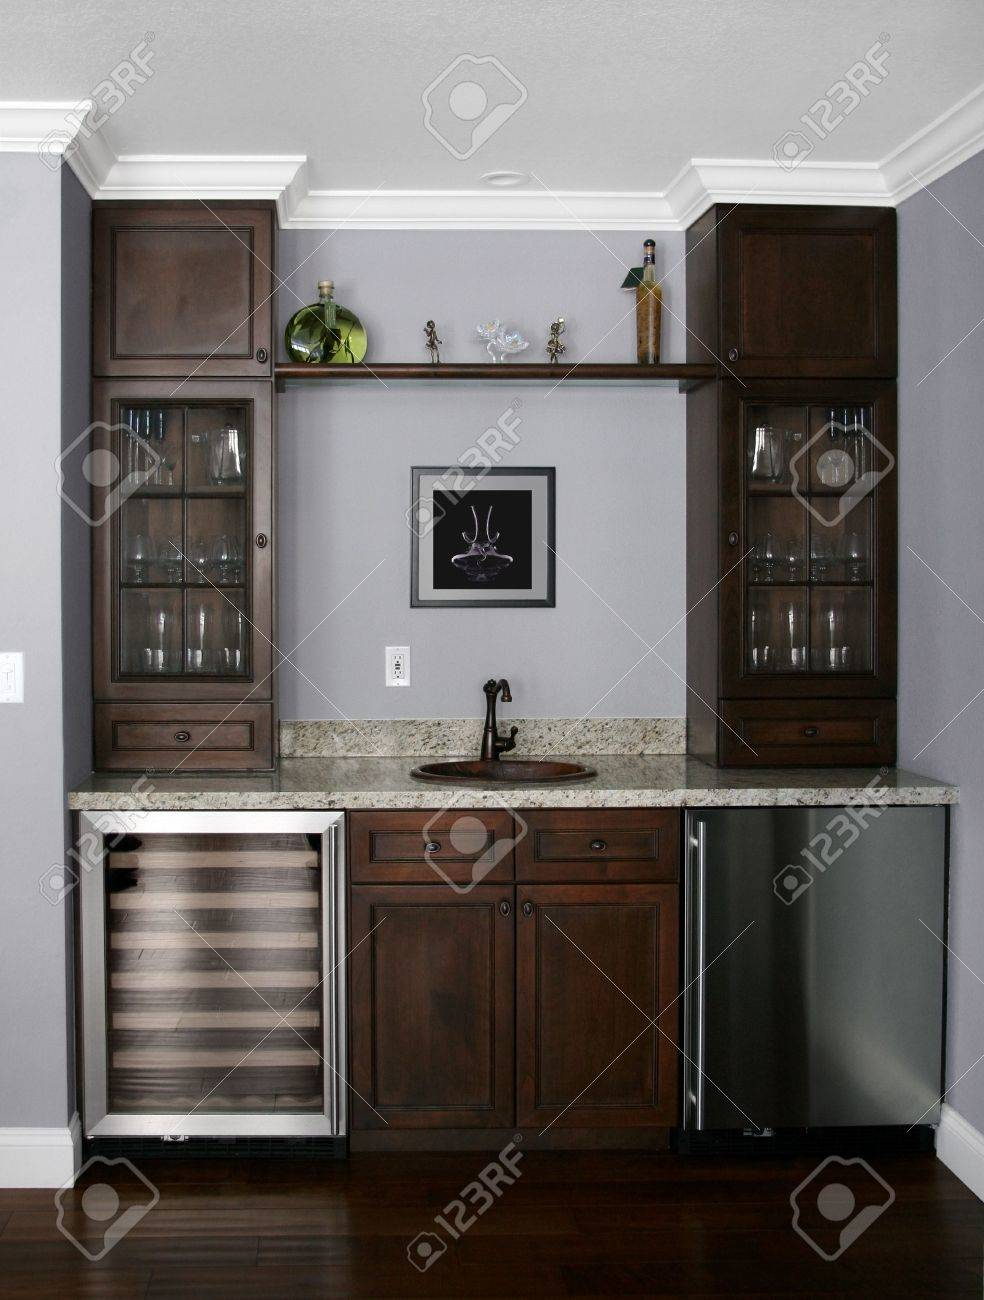 http://previews.123rf.com/images/barsik/barsik0703/barsik070300055/802099-Details-of-a-wet-bar-in-modern-house-he-picture-on-the-wall-is-my-own-image-Stock-Photo.jpg